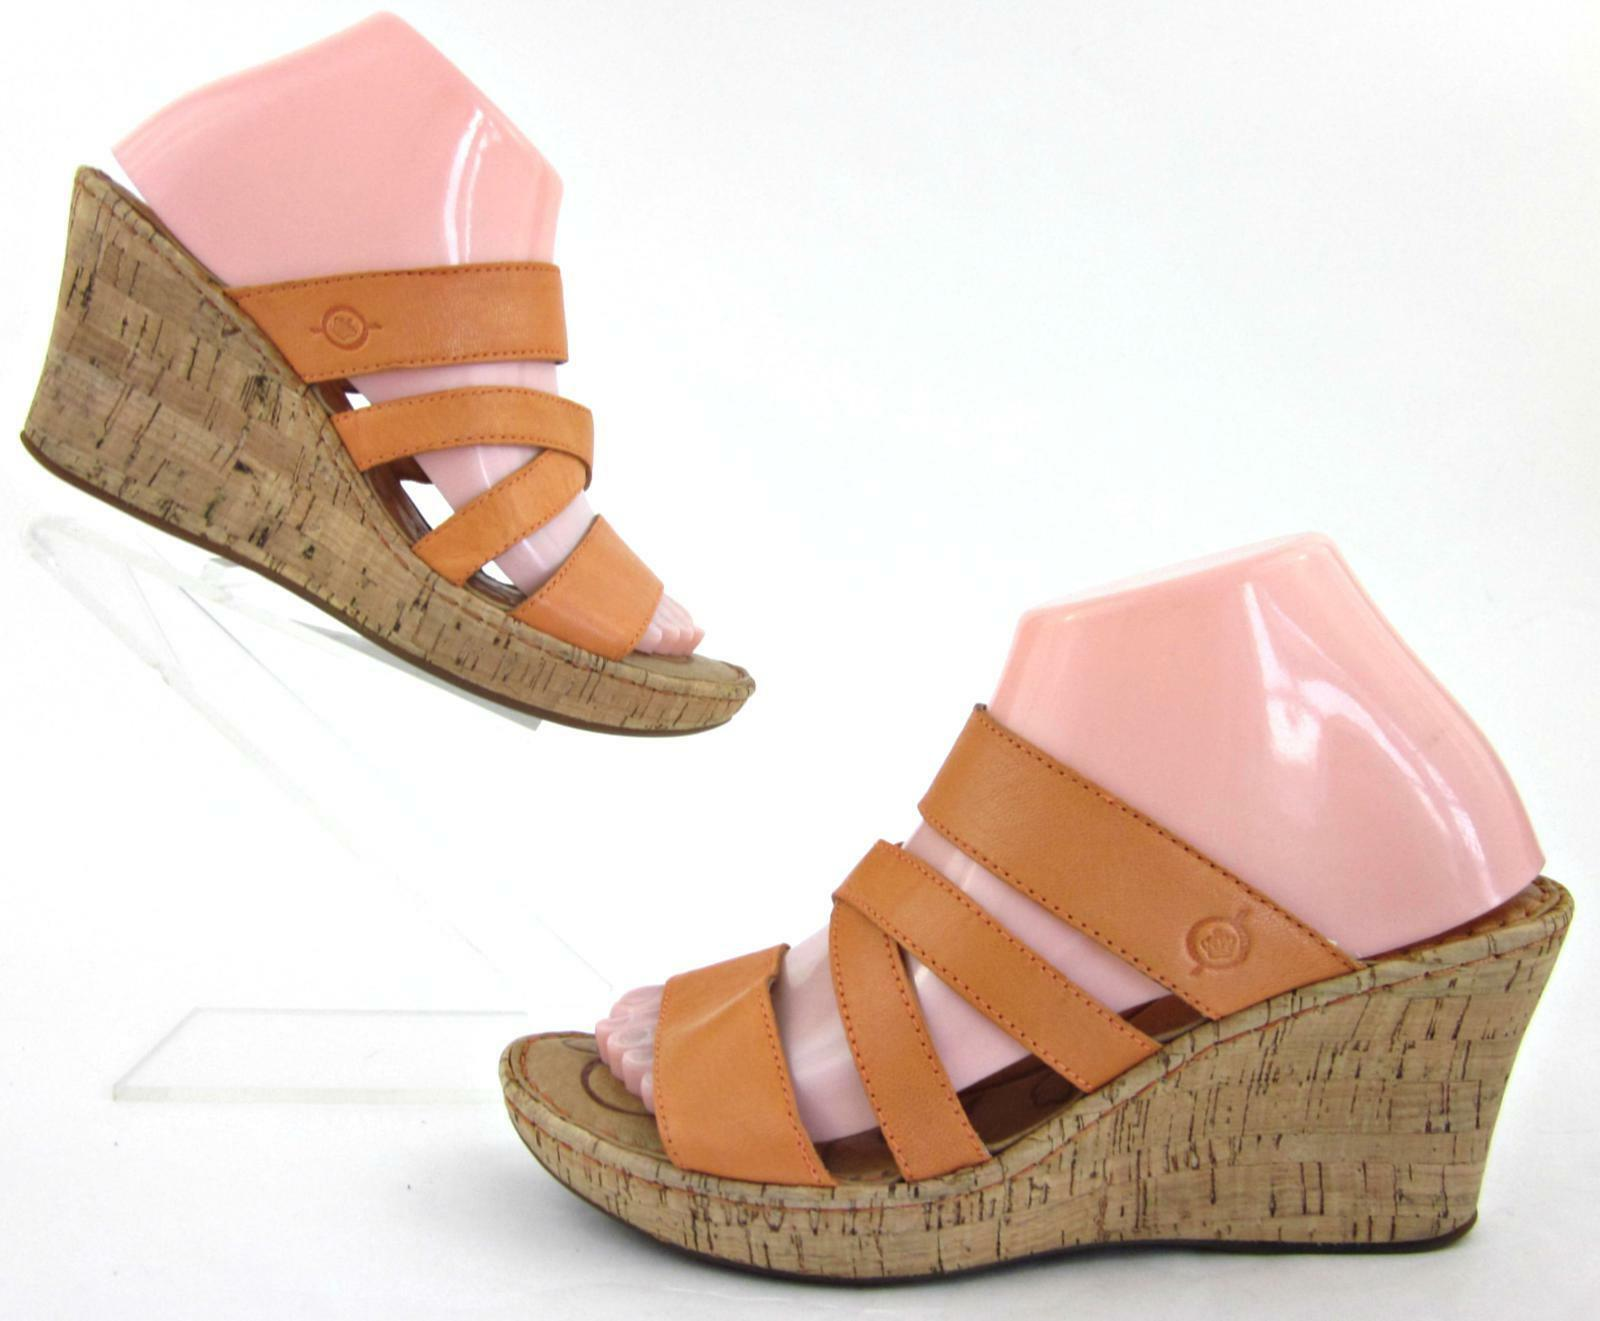 Born Orange 'Zemora' Cork Wedge Sandals Orange Born Leather US 8M fb7cfc